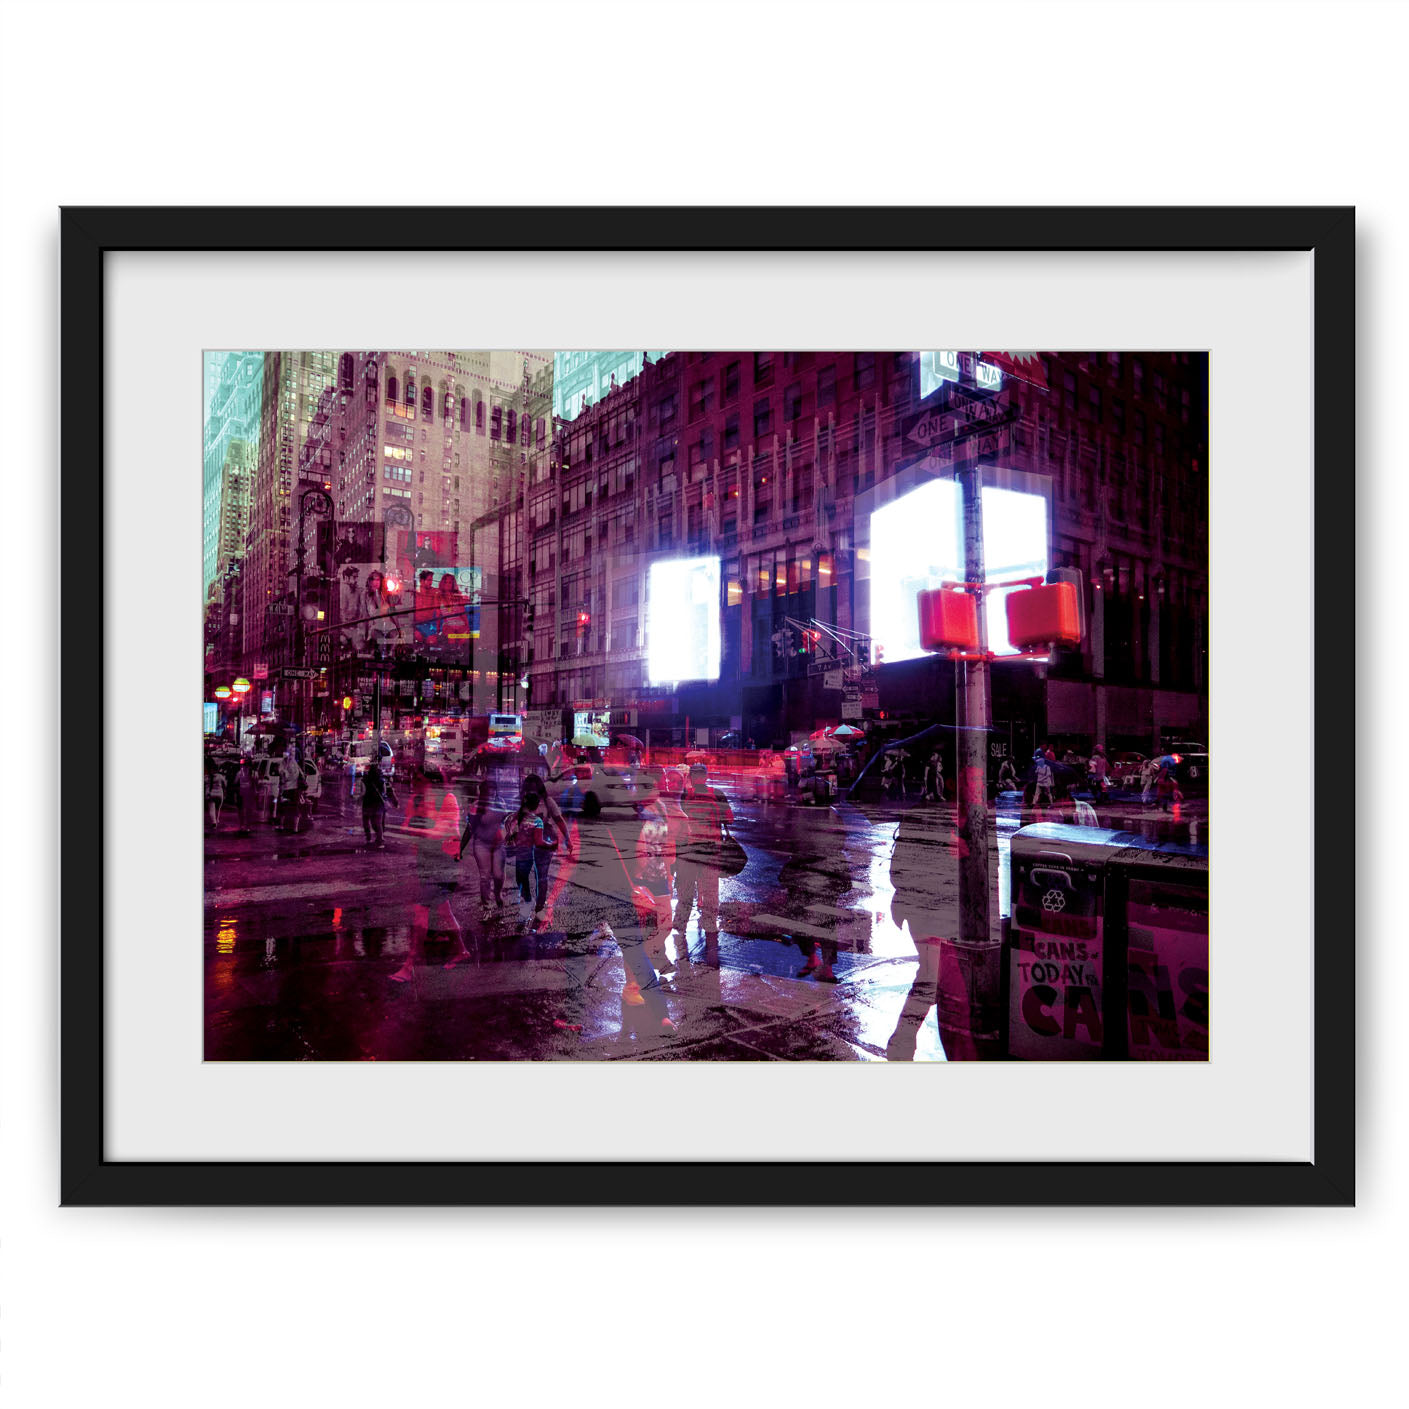 Framed example with mount of a Limited Edition colour fine art photography A2 size art giclee print taken on the streets of New York City